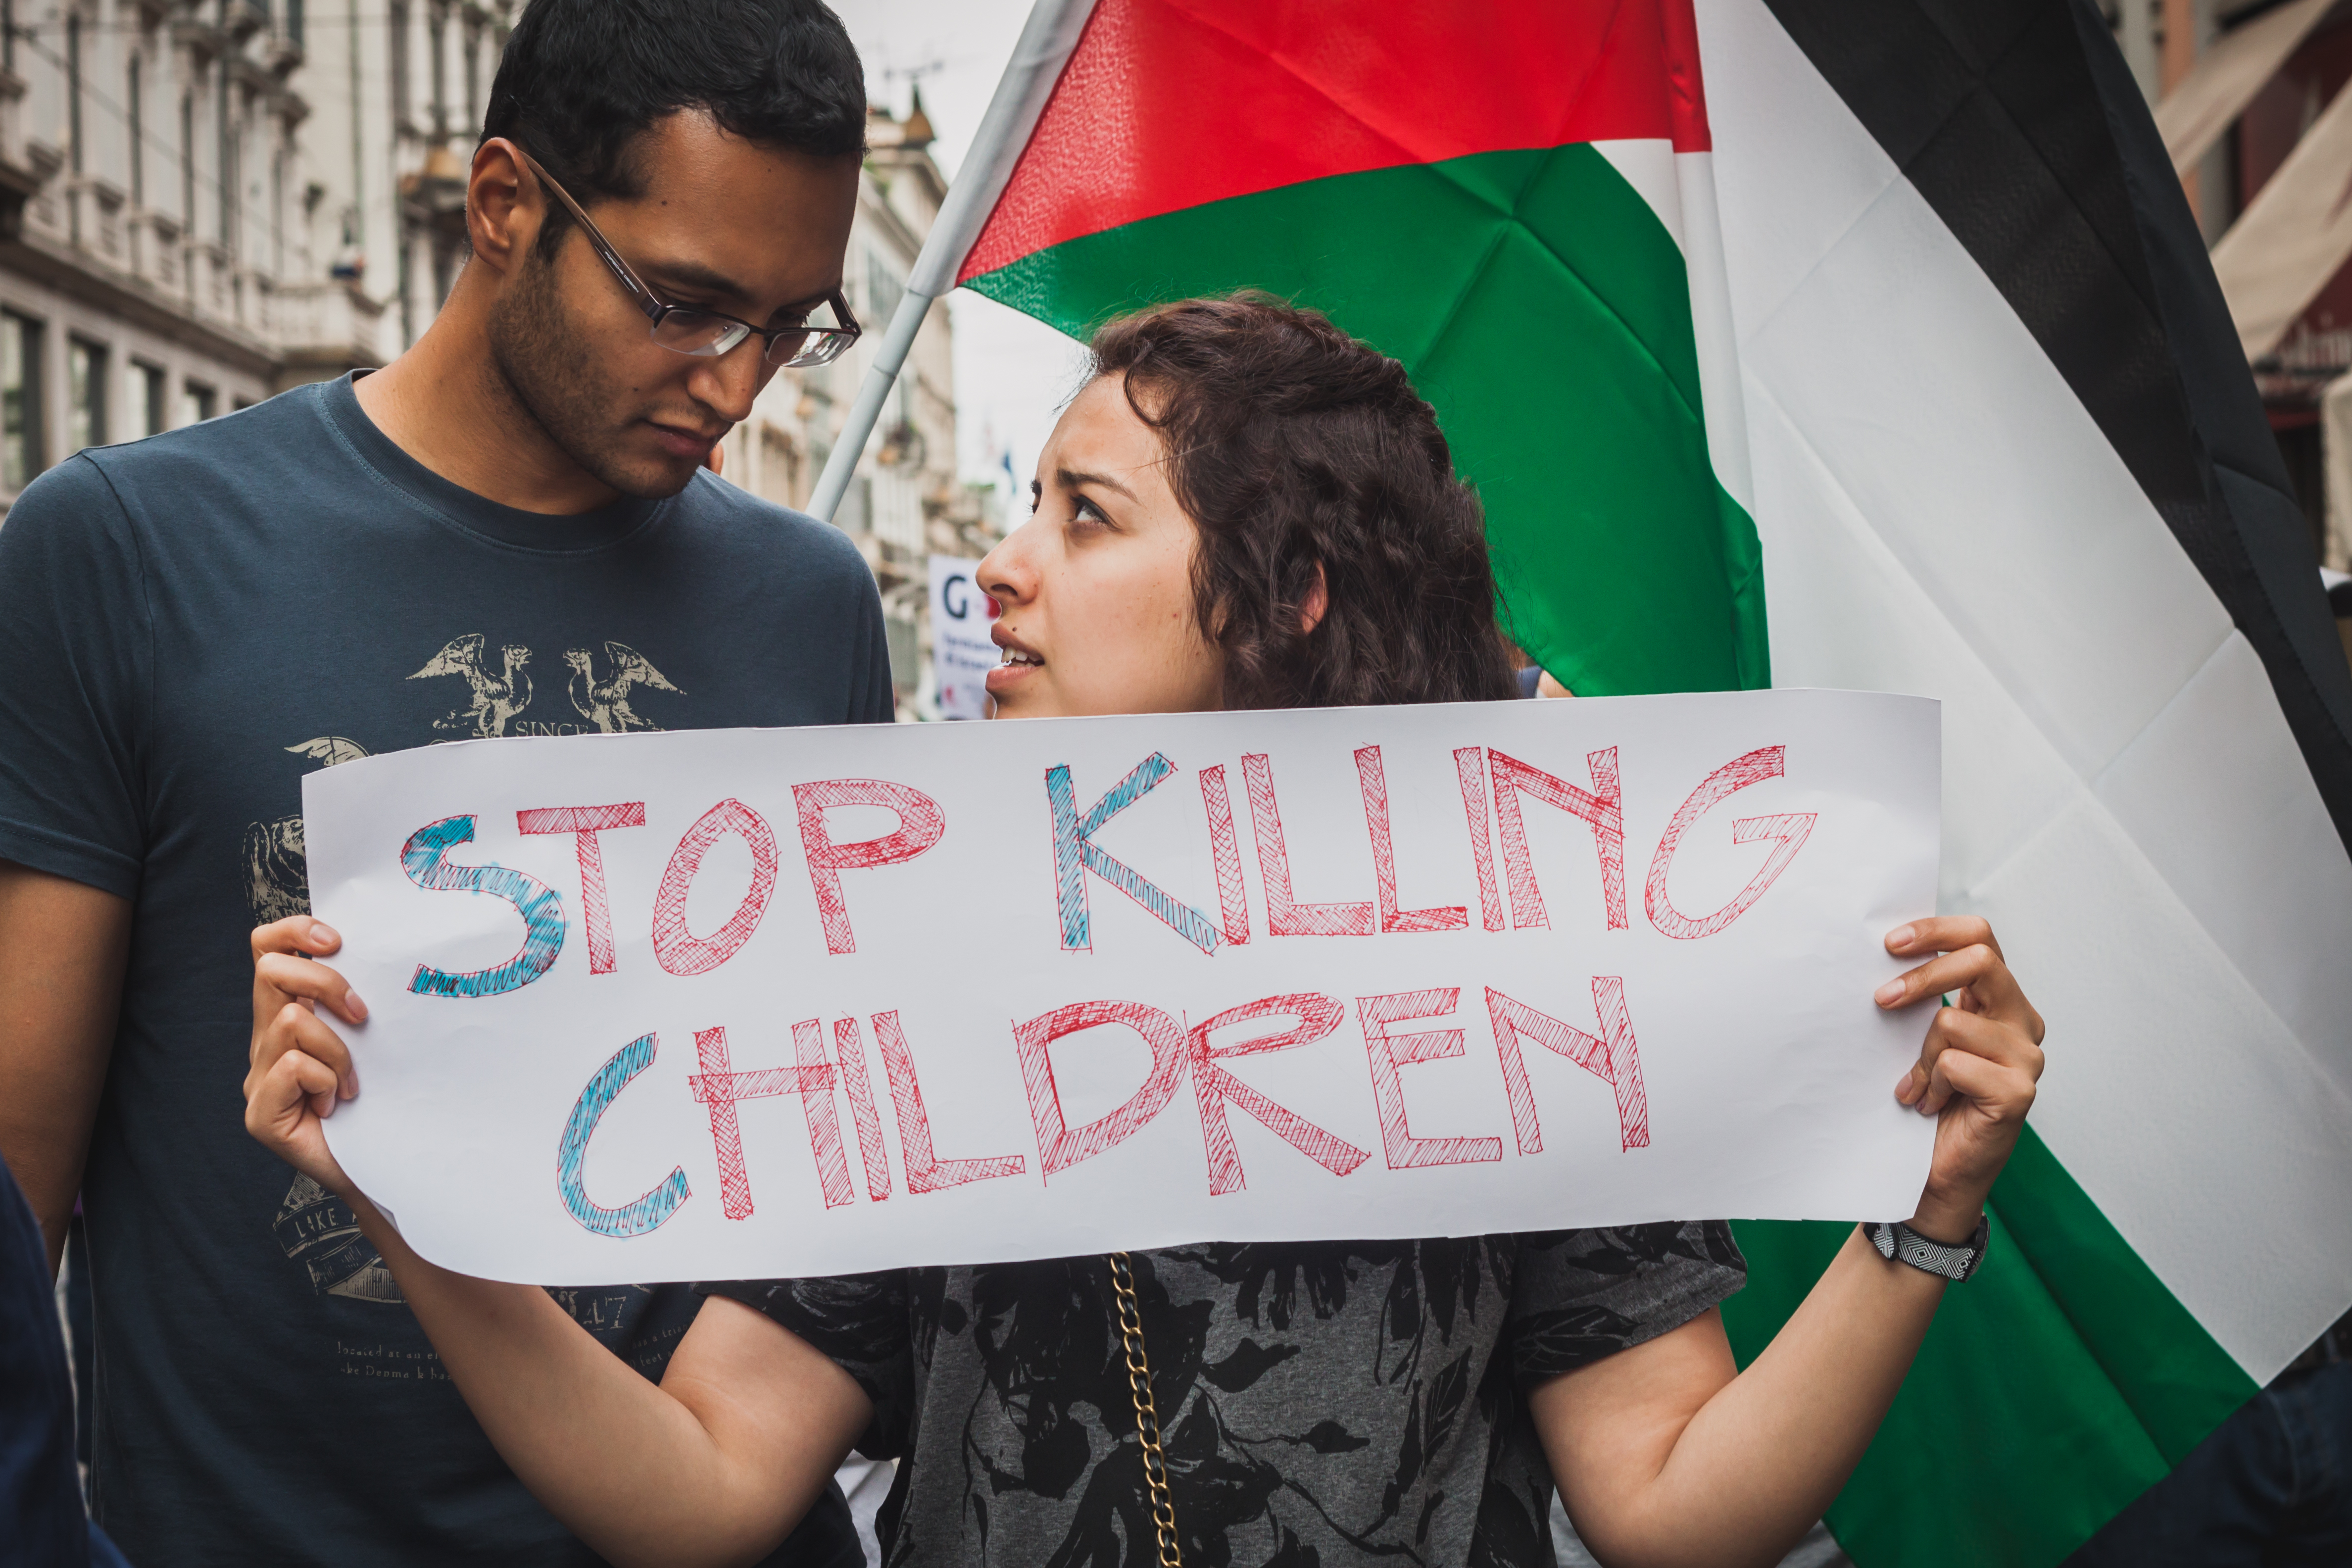 People in Milan, Italy, march in protest of bombings in Gaza in July, 2014. Tinxi / Shutterstock.com